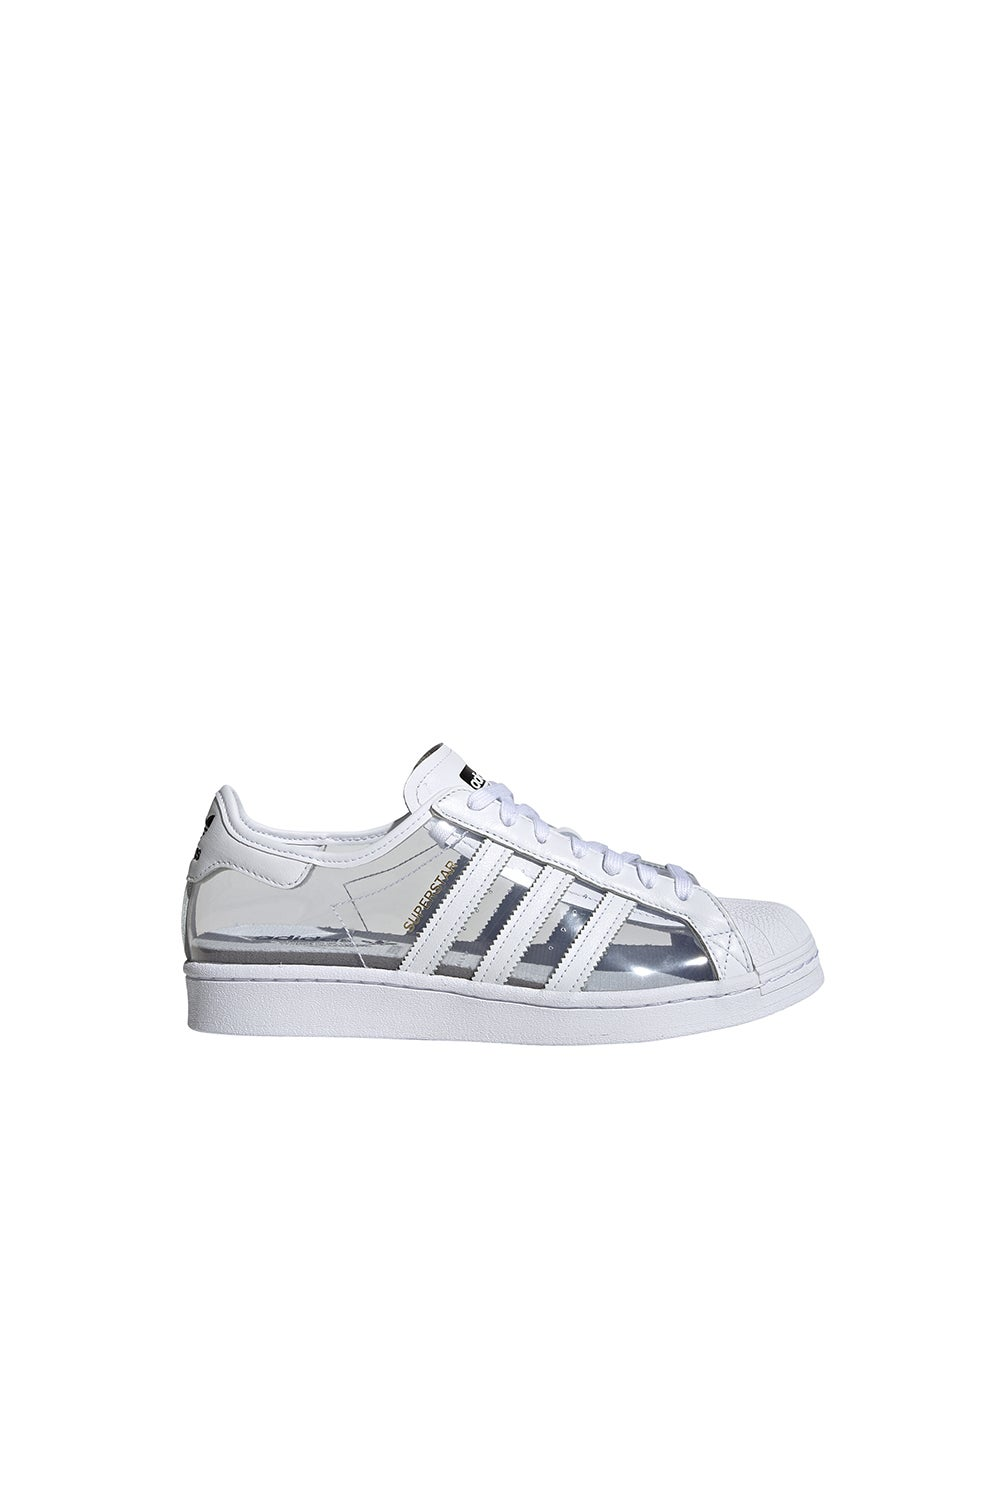 adidas Superstar Supplier Colour